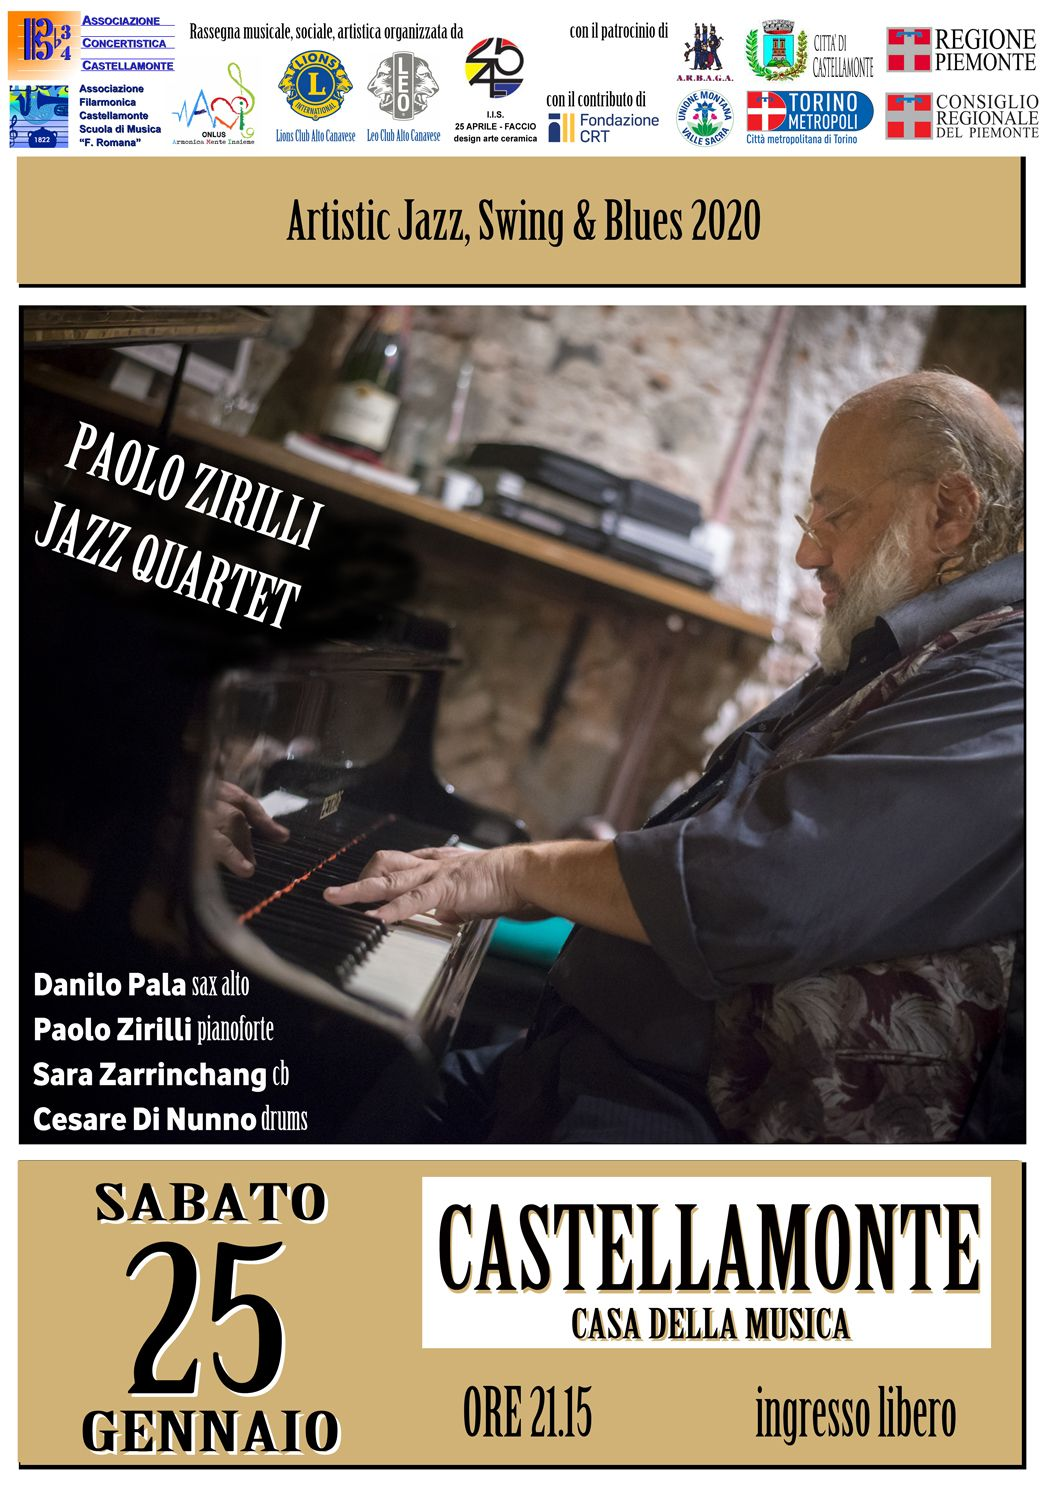 CASTELLAMONTE - Ultimo concerto della rassegna Artistic Jazz, Swing and Blues